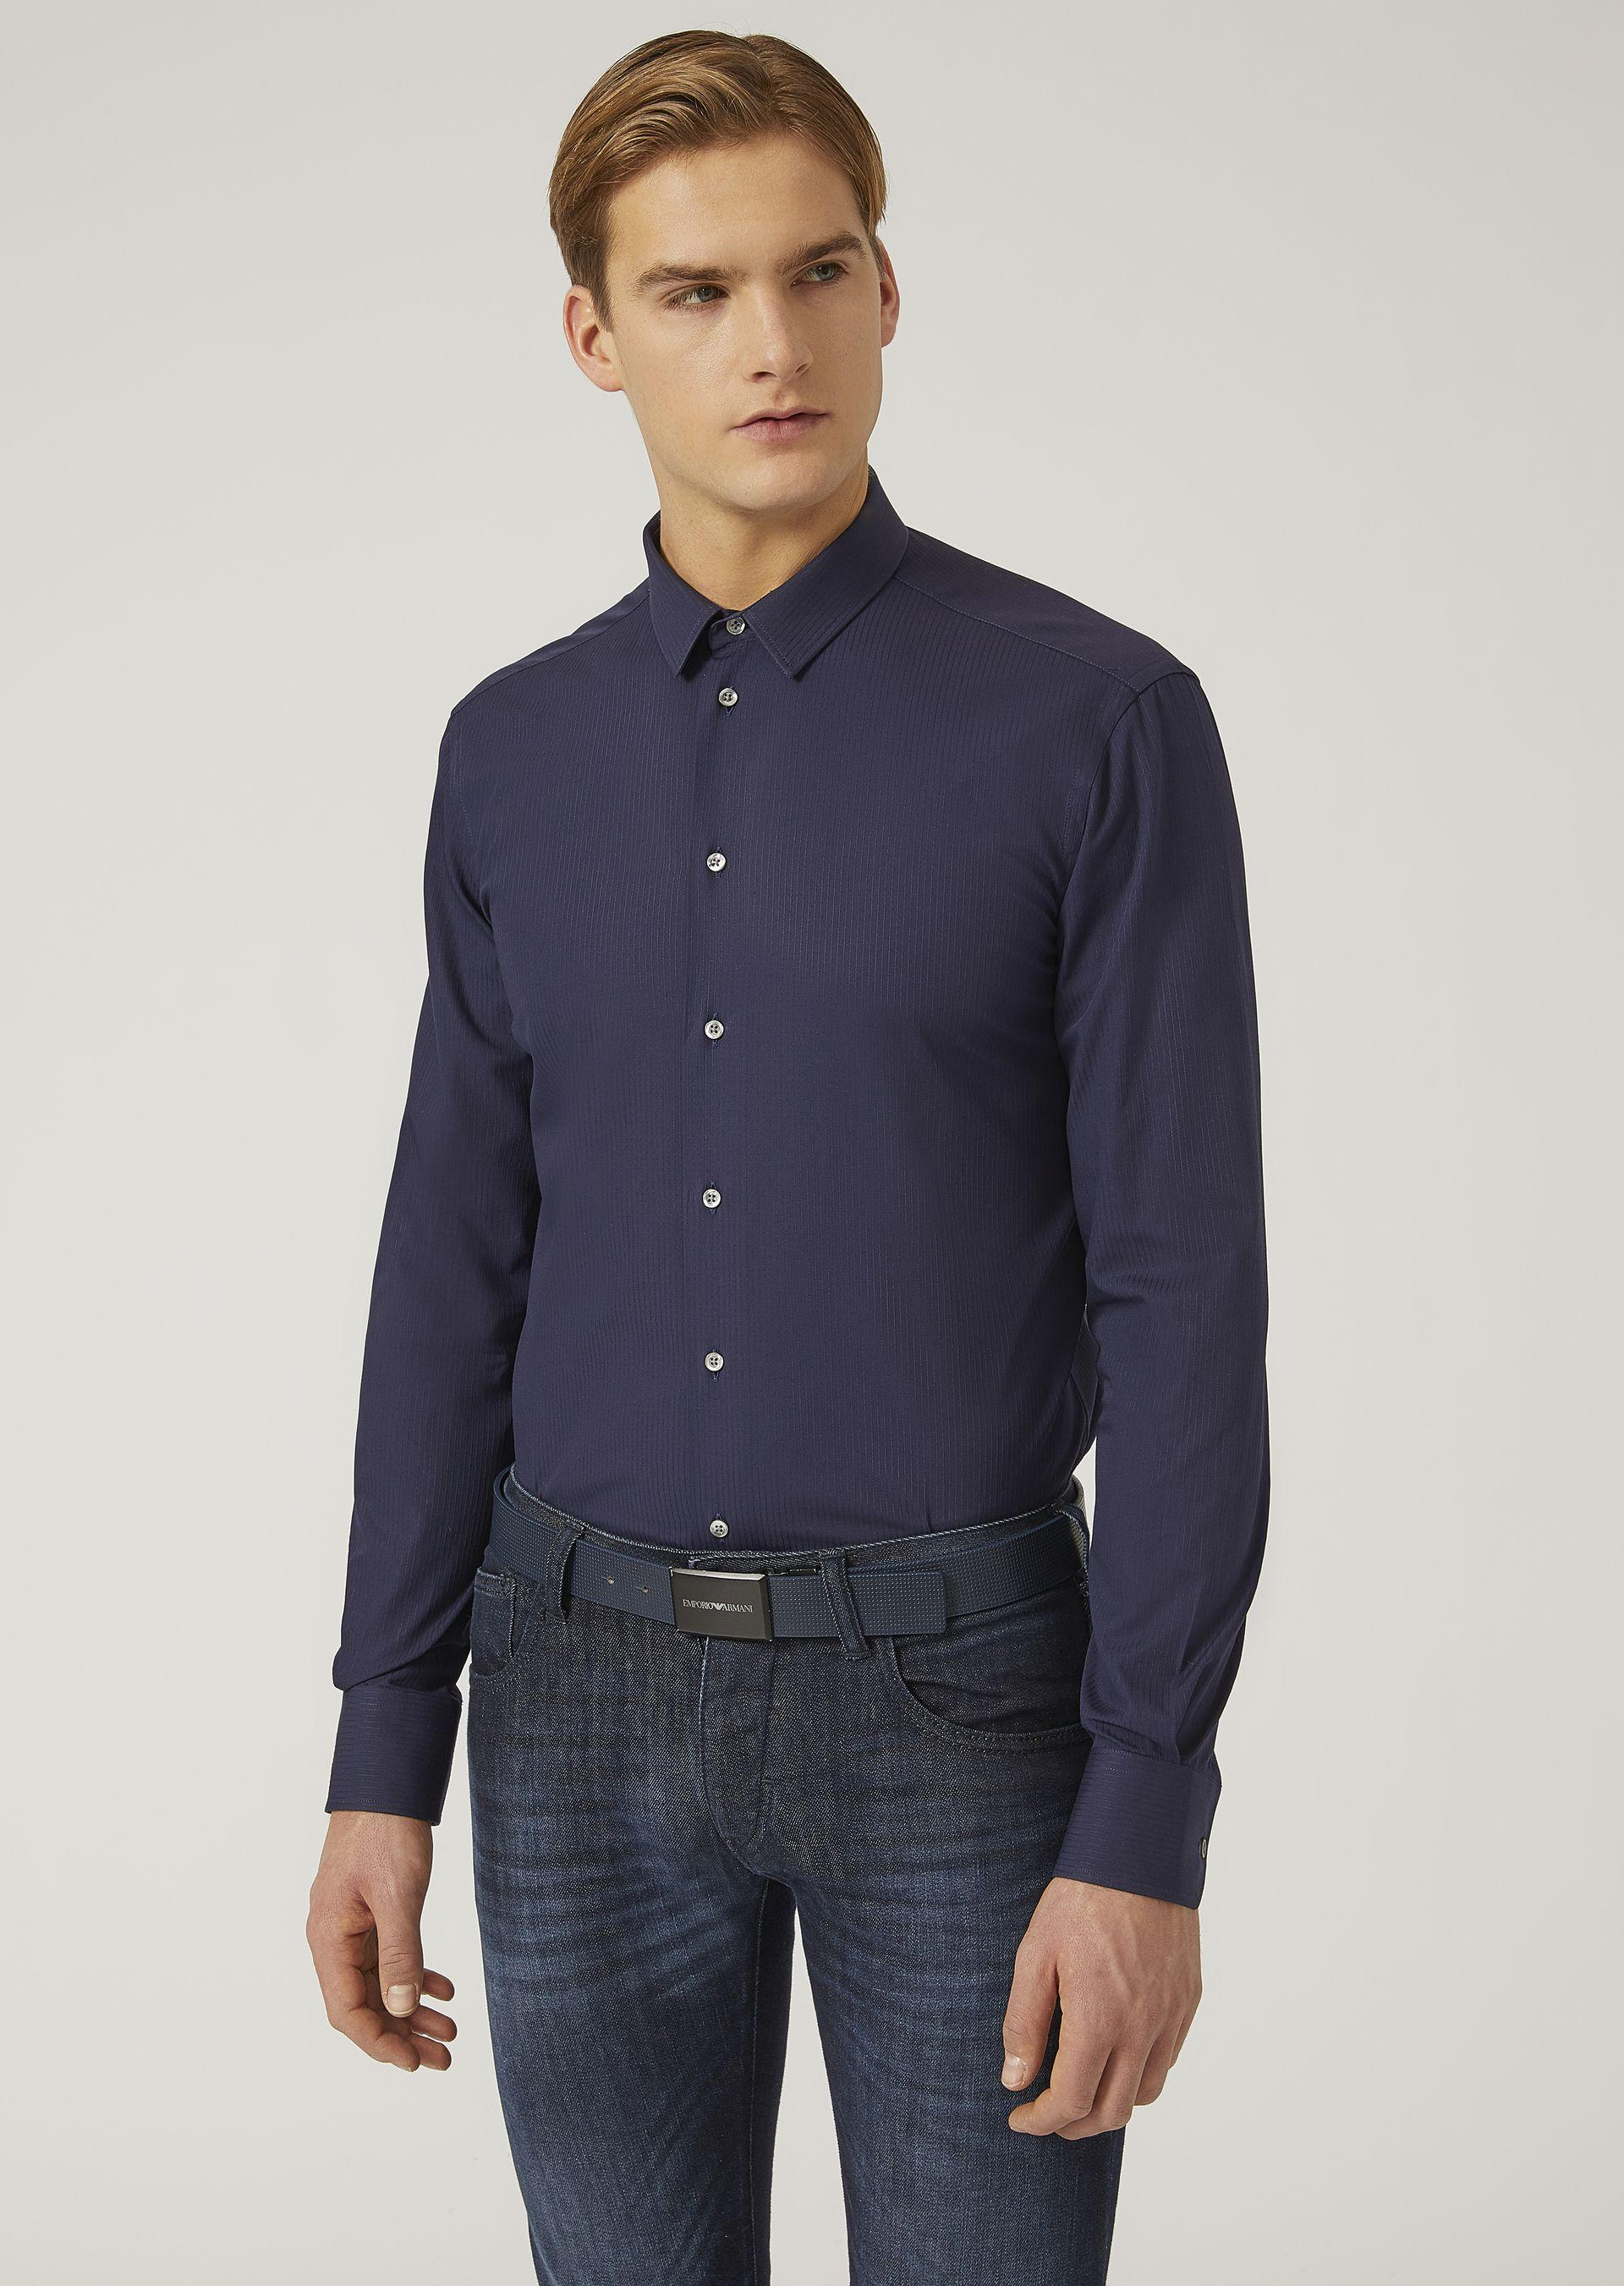 Emporio Armani Classic Shirts - Item 38719045 In Navy Blue